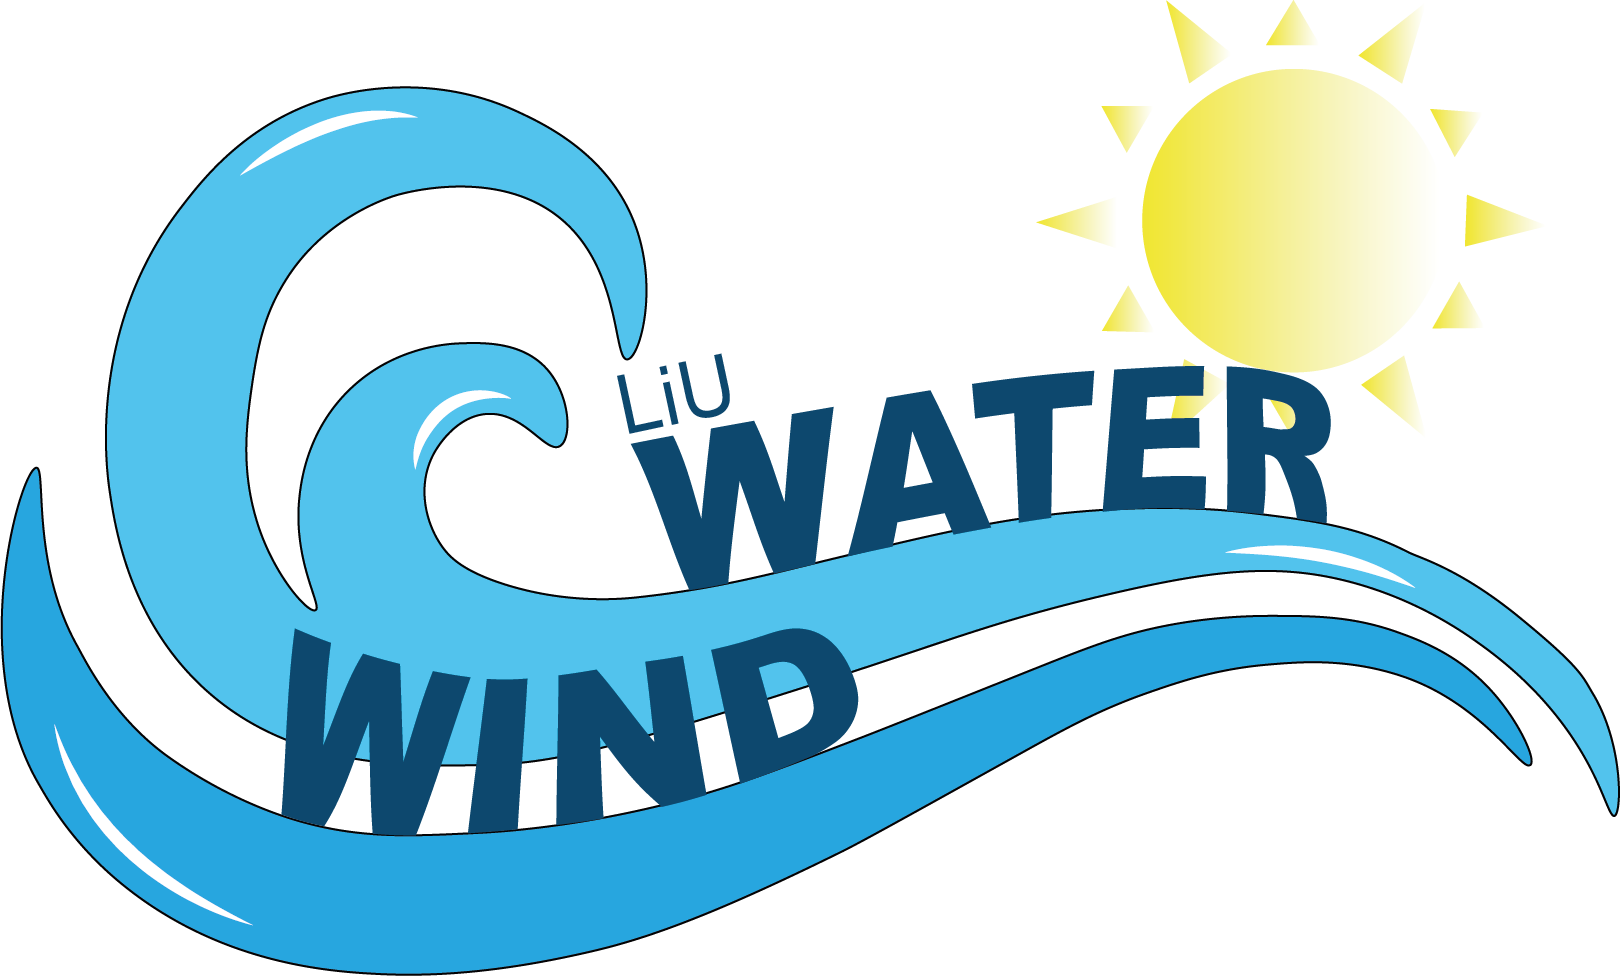 LiU Water & Wind